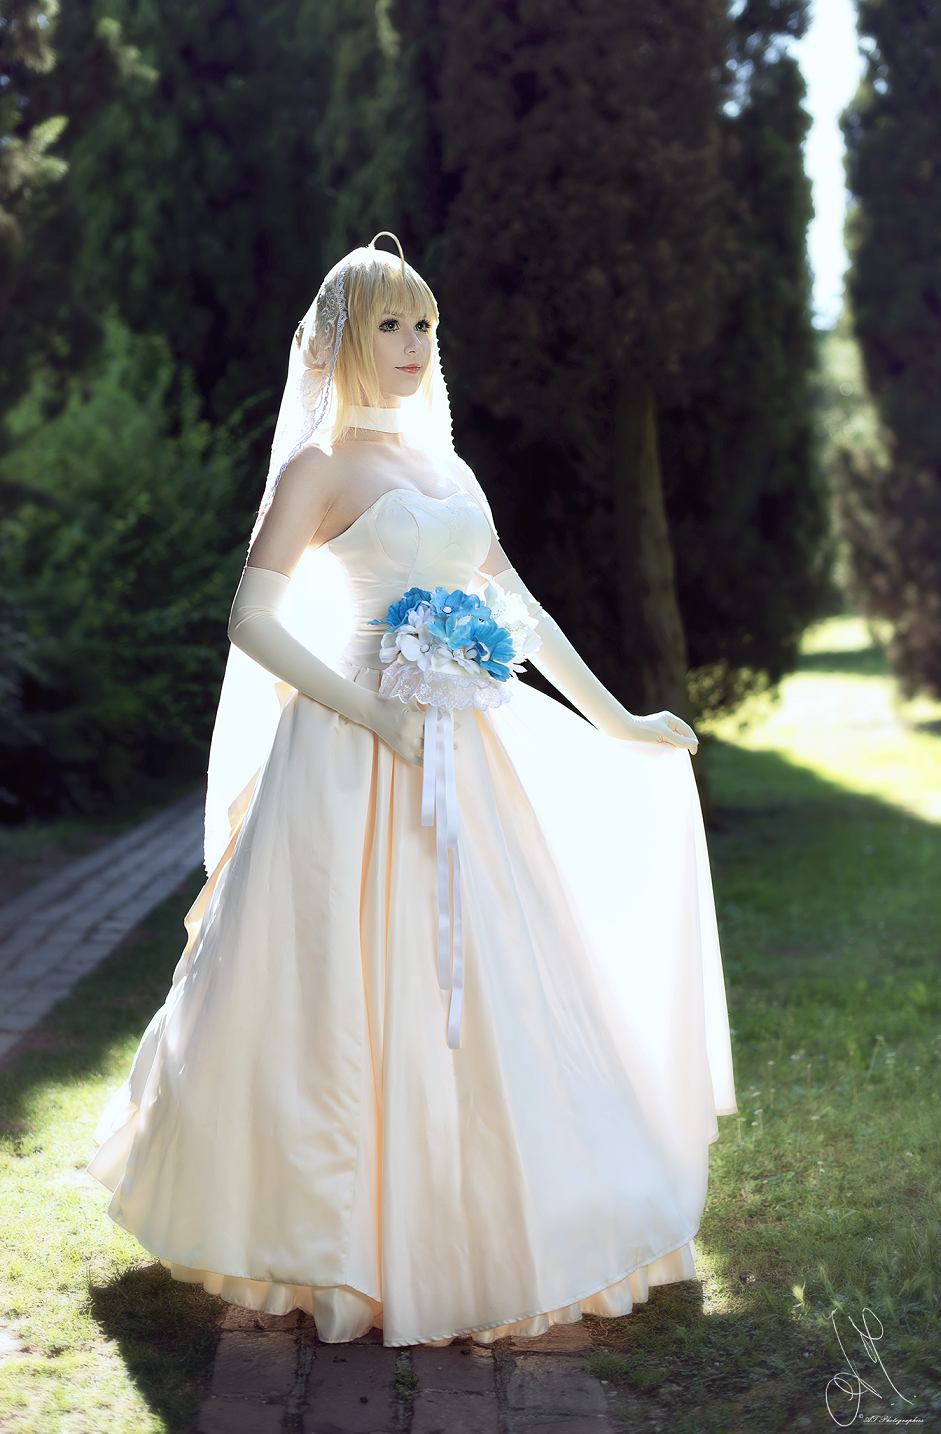 fatestay night saber wedding dress by kiaraberry on